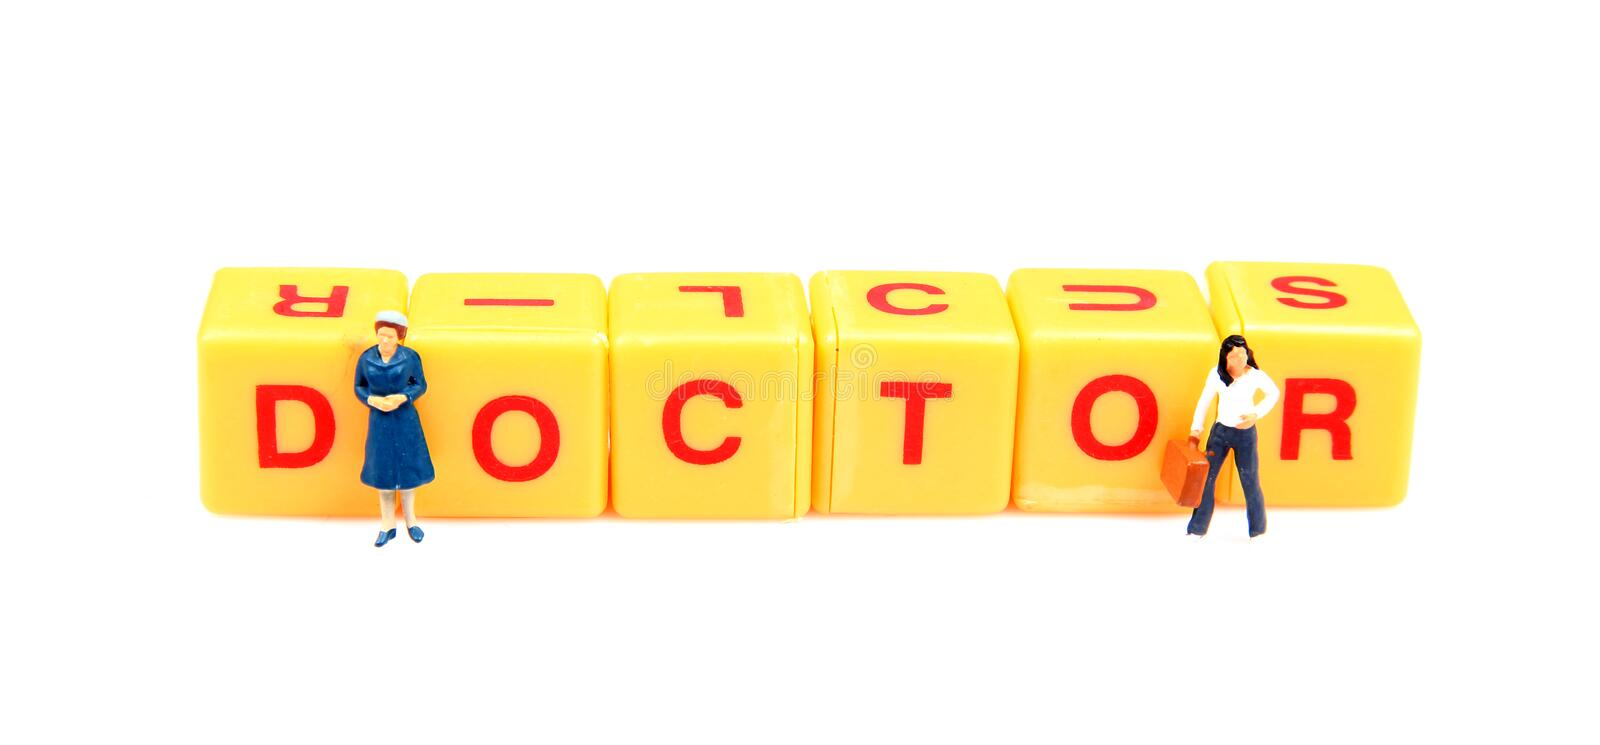 Need Doctor Royalty Free Stock Photo